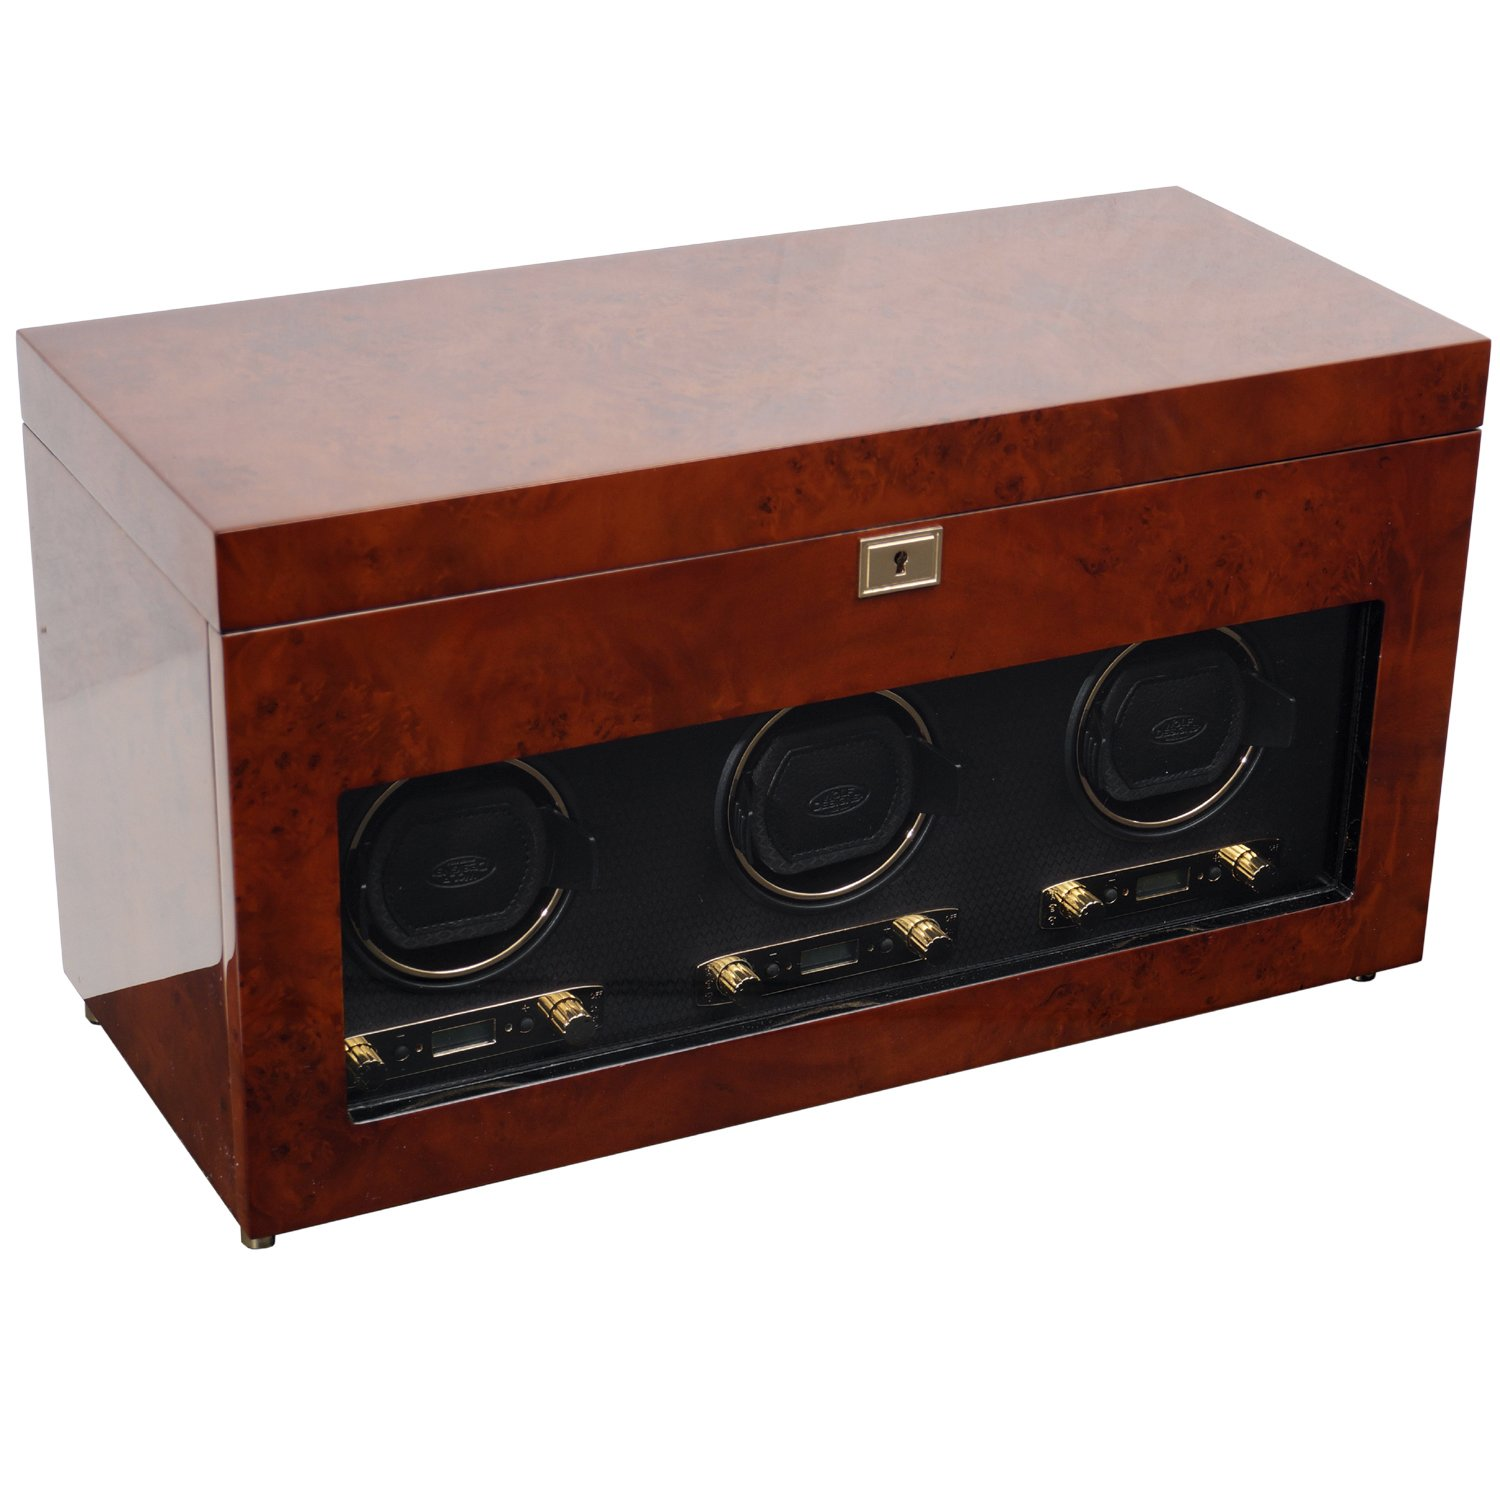 WOLF 454710 Savoy Triple Watch Winder with Cover and Storage, Burlwood